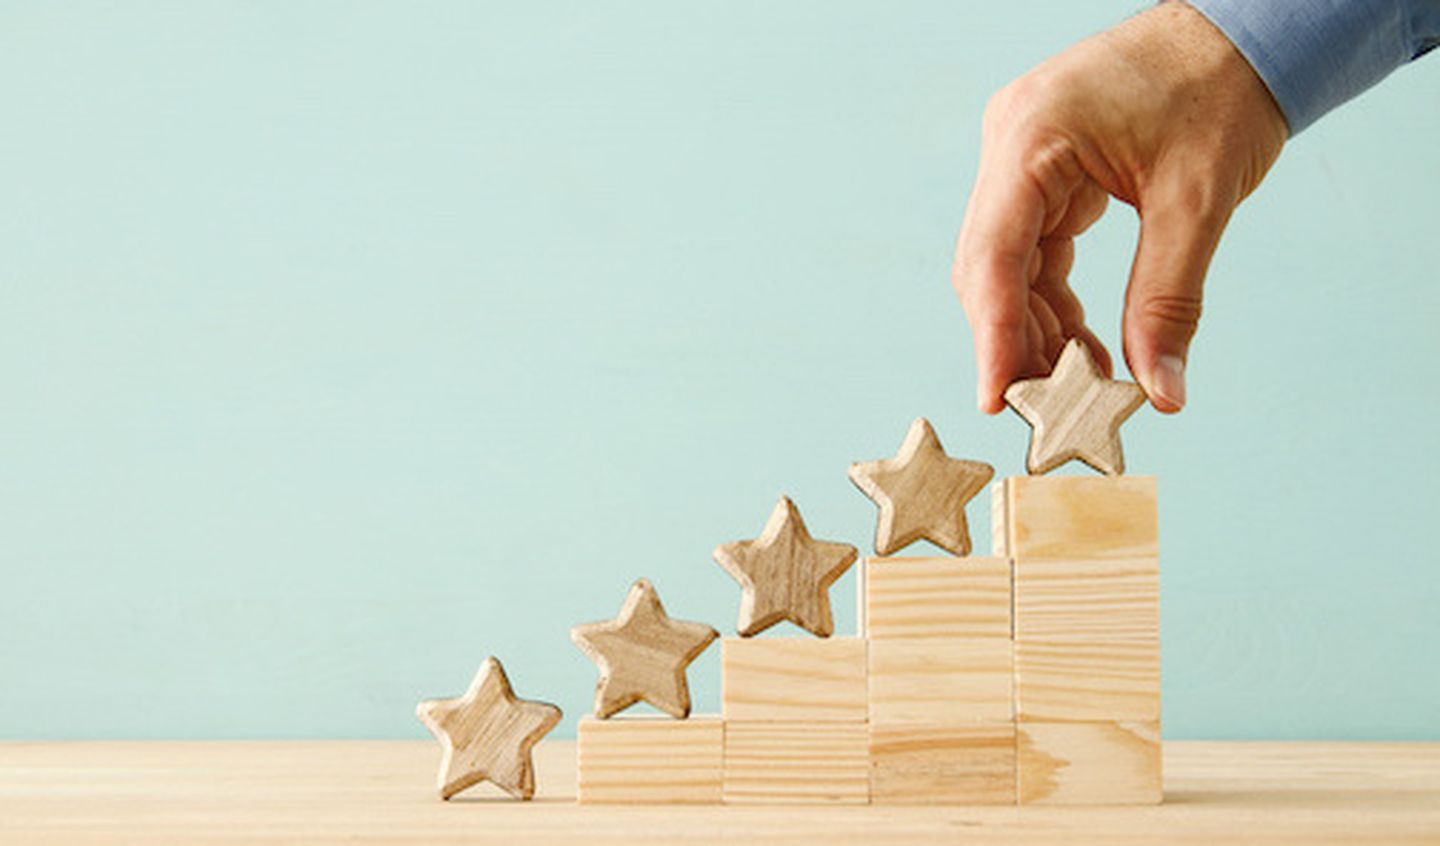 Concept image of setting a five star goal increase rating or ranking evaluation and classification idea 2